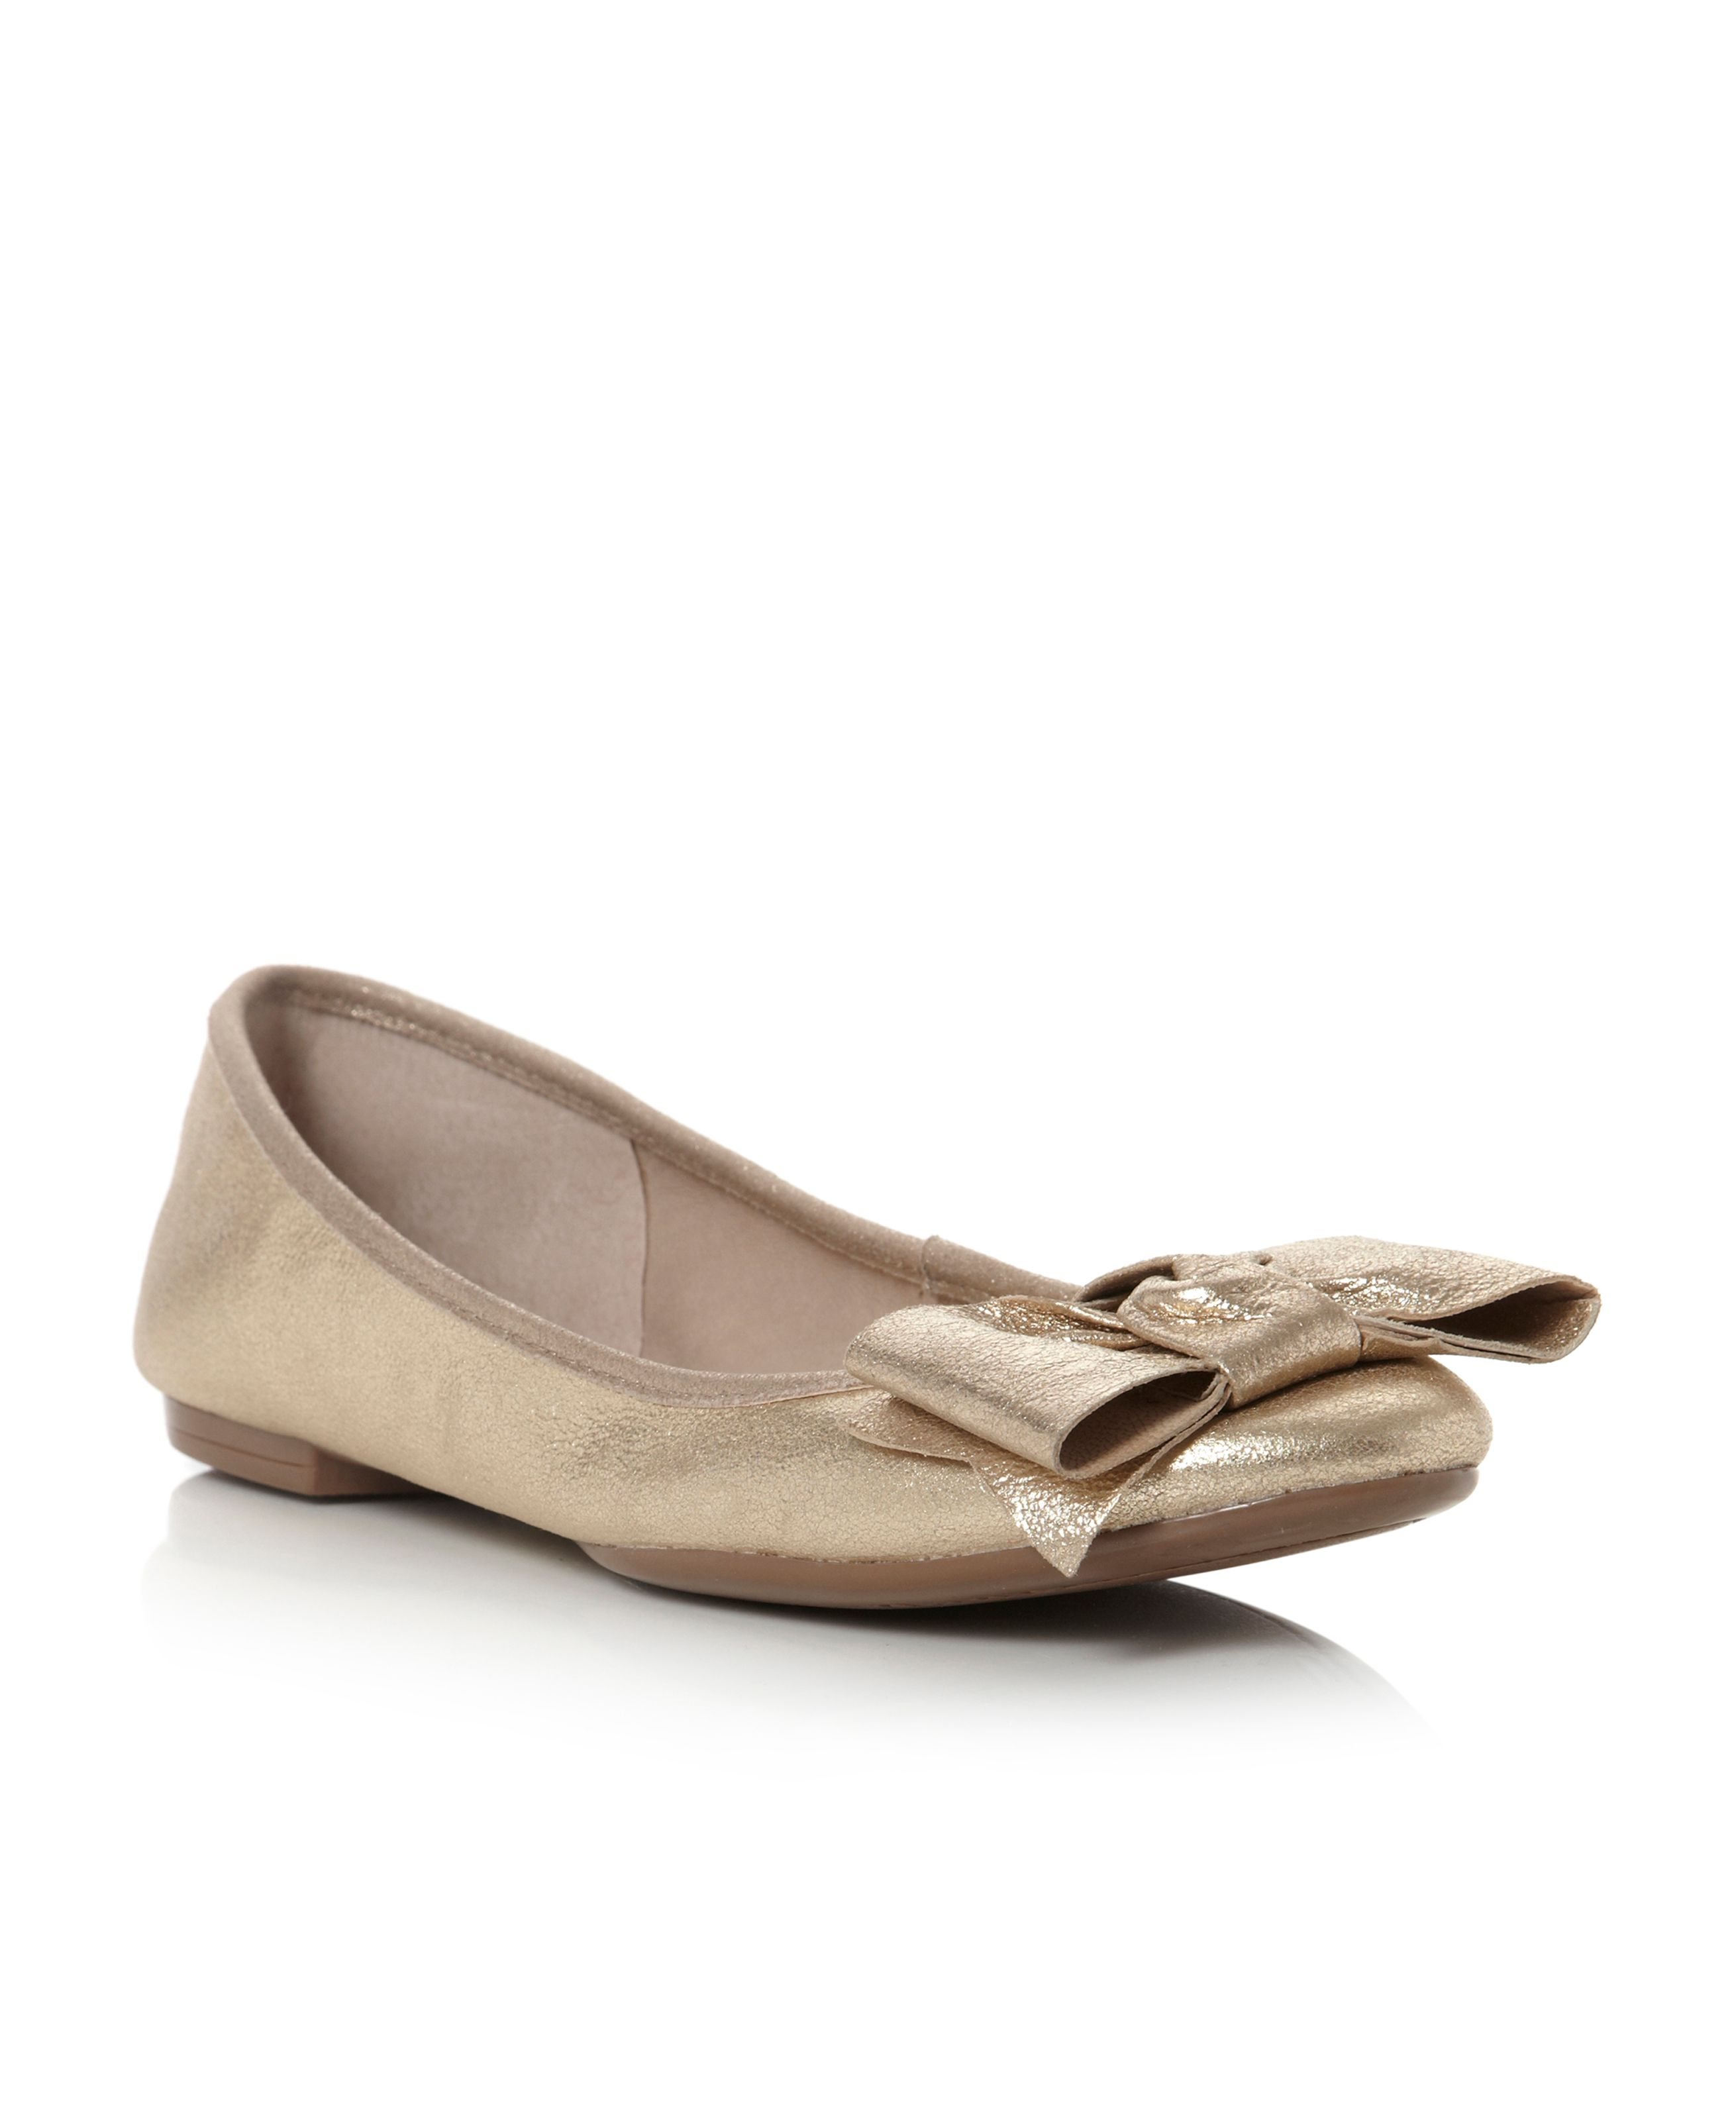 Melbont Champagne Metallic Ballerina Shoes